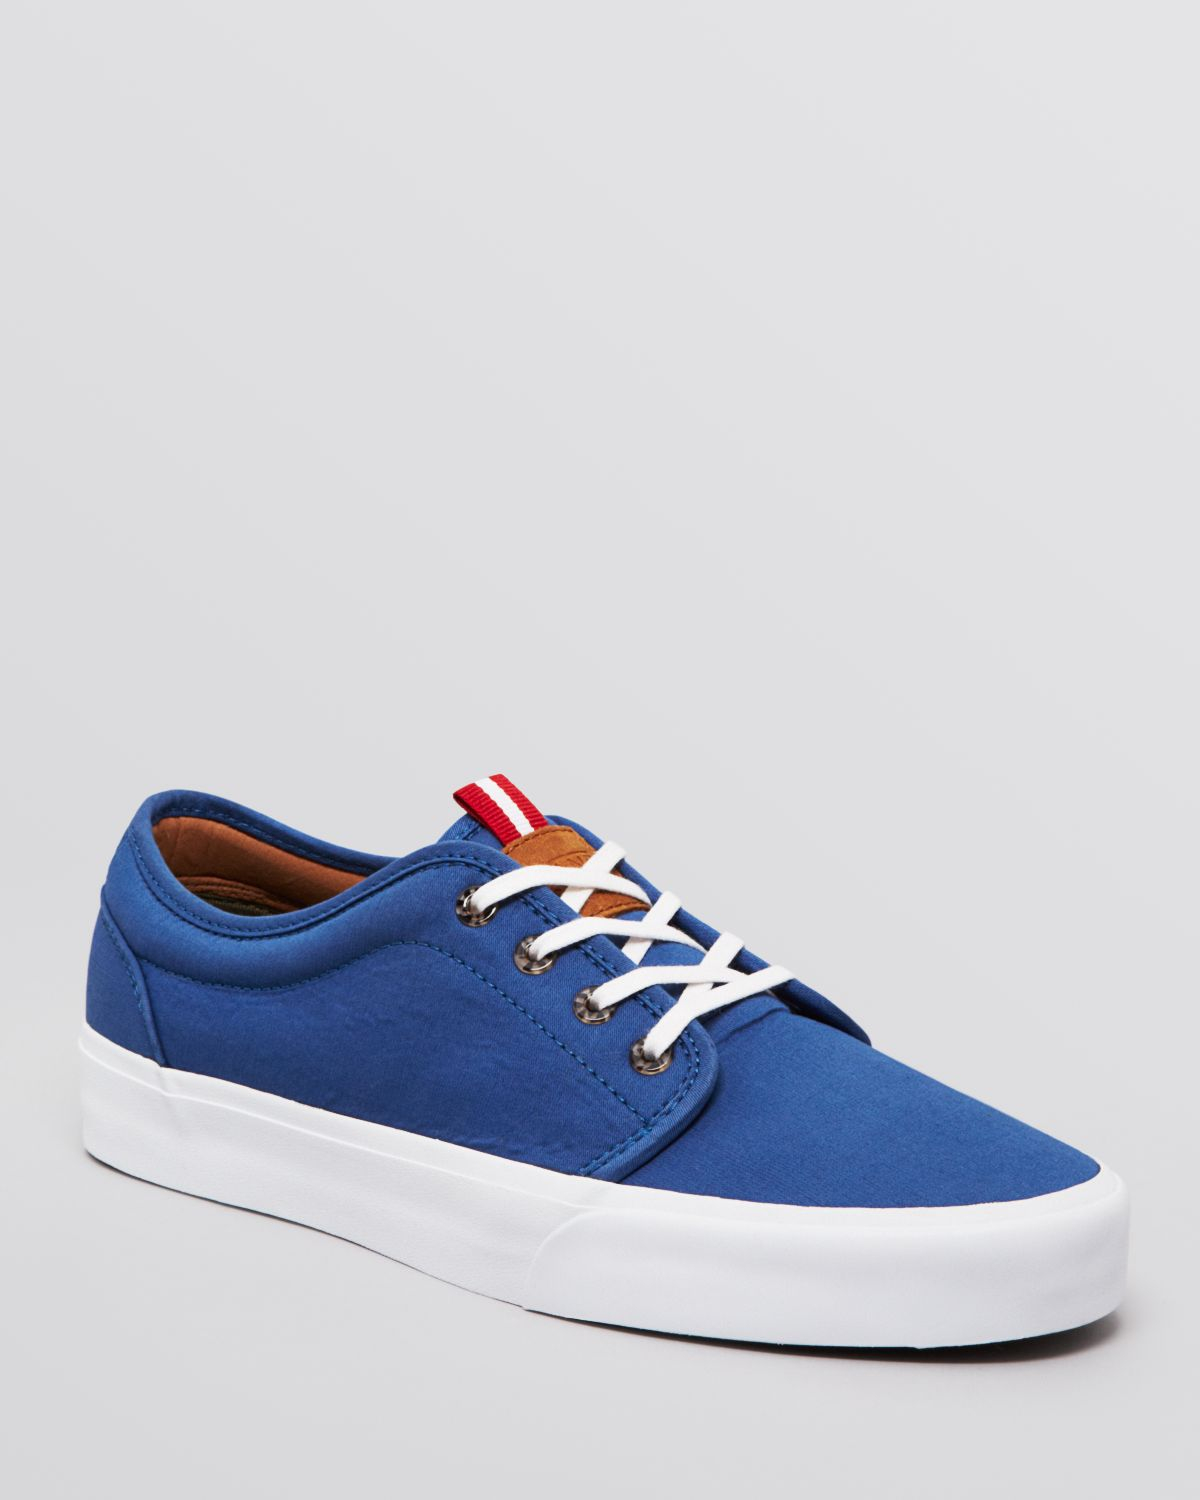 Lyst - Vans 106 Vulcanized Ca Sneakers in Blue for Men 7809a2490